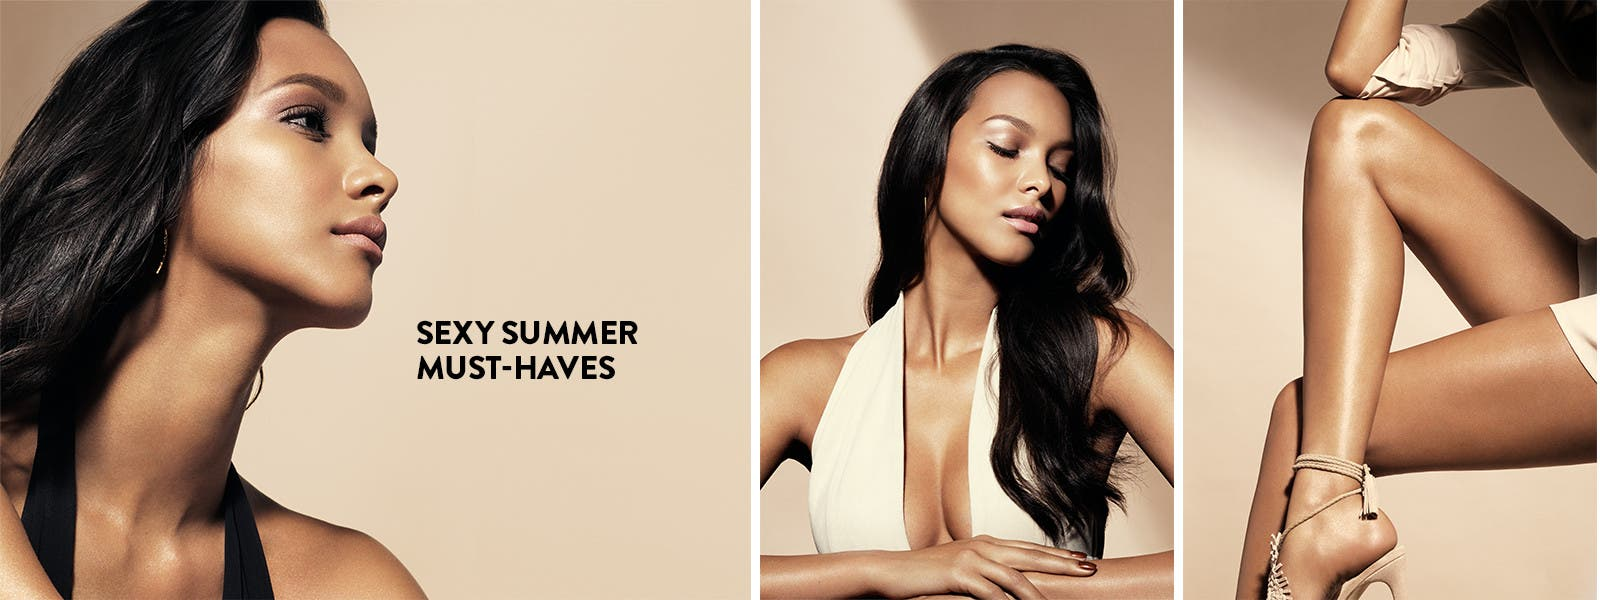 Sexy summer must-haves.